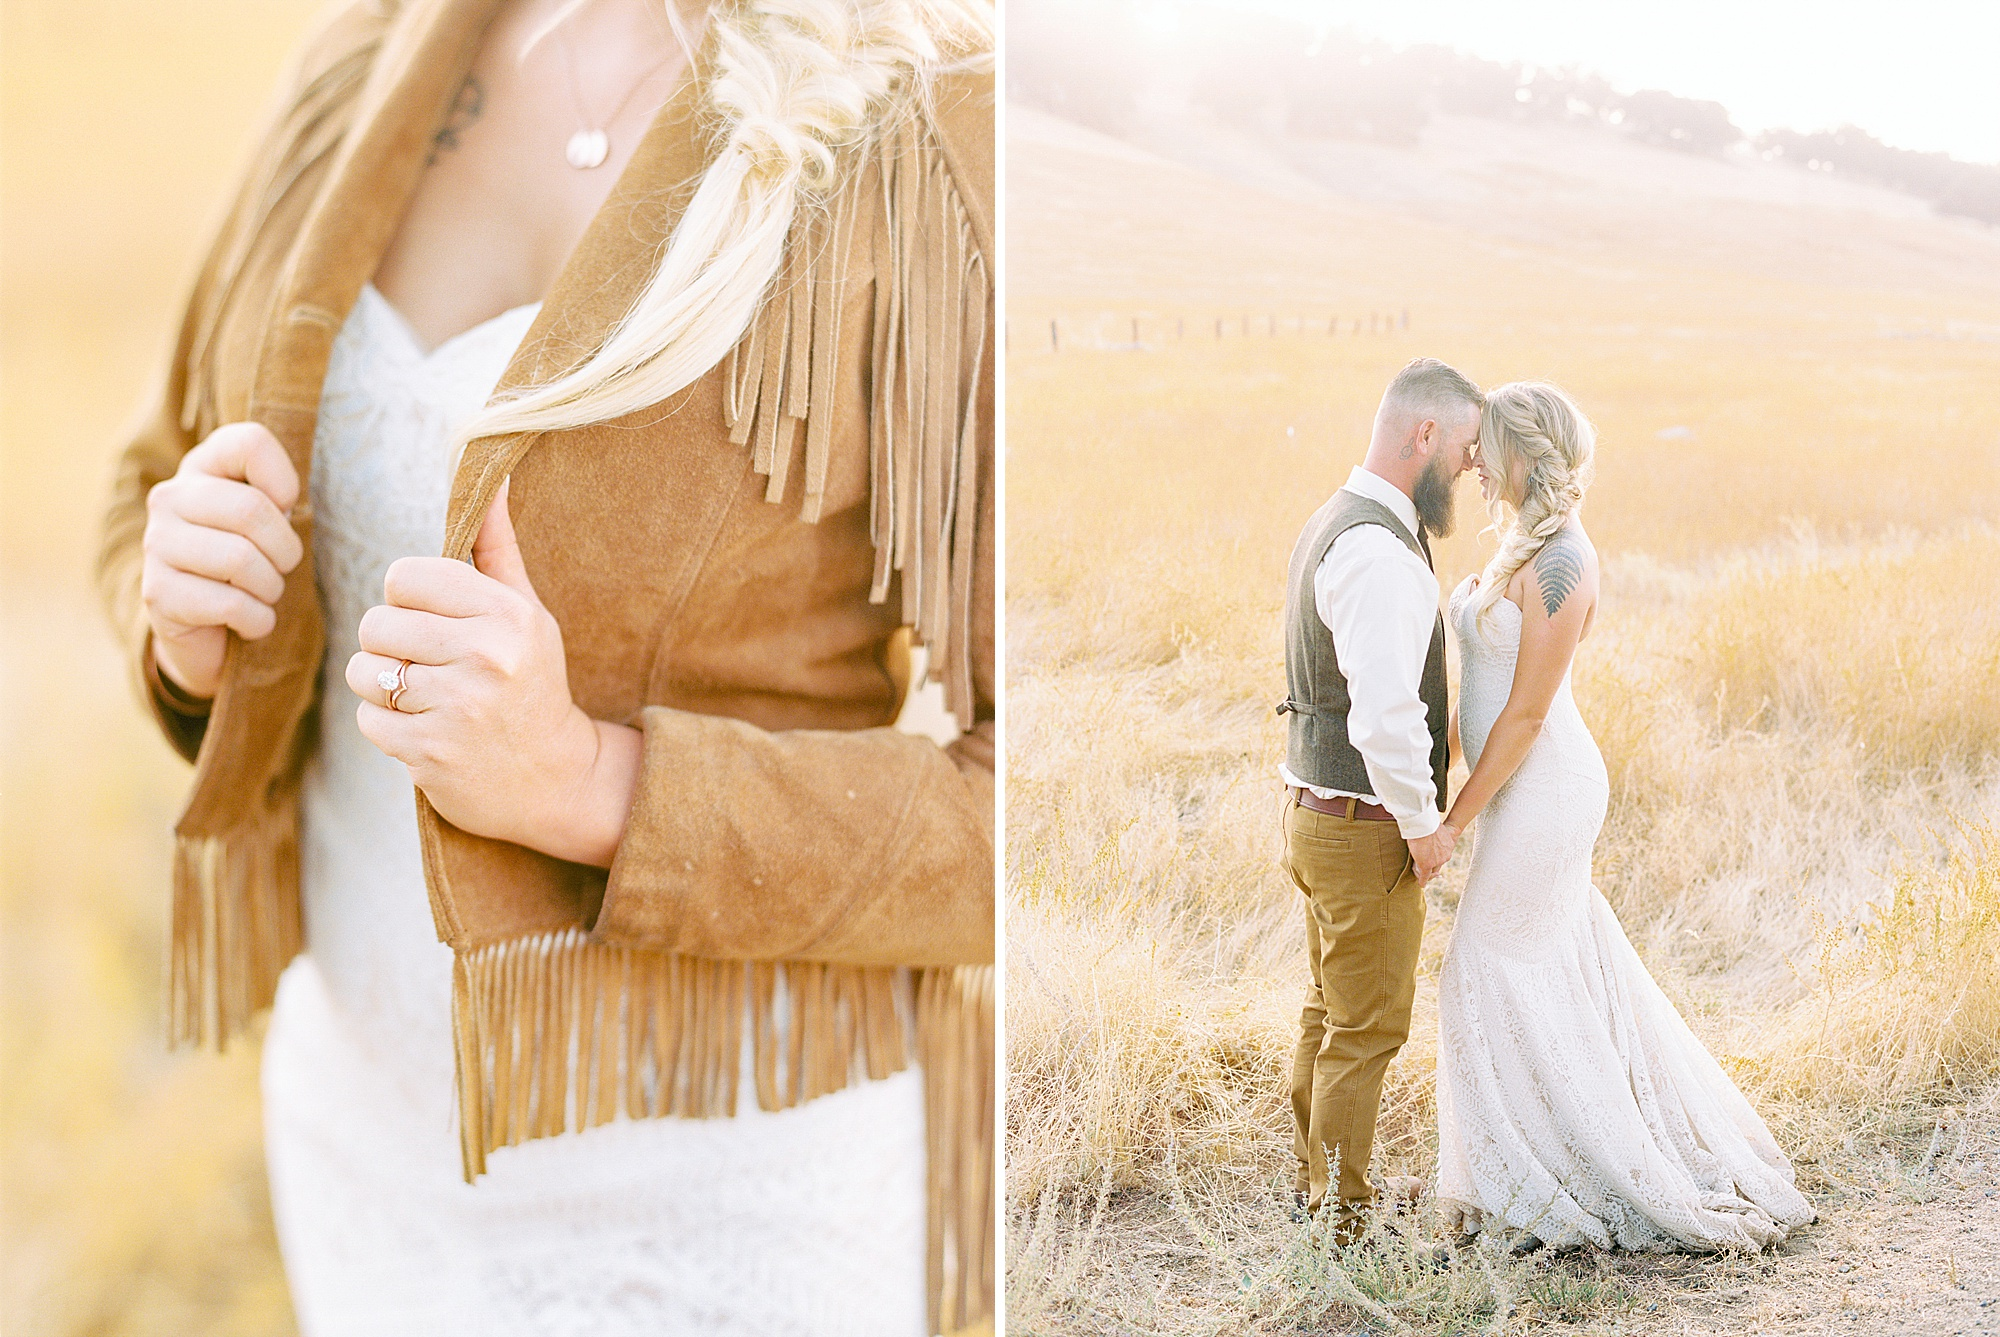 Sonora Wedding Photographer - Tiffany and Jesse - Ashley Baumgartner - Private Estate Summer Wedding_0119.jpg